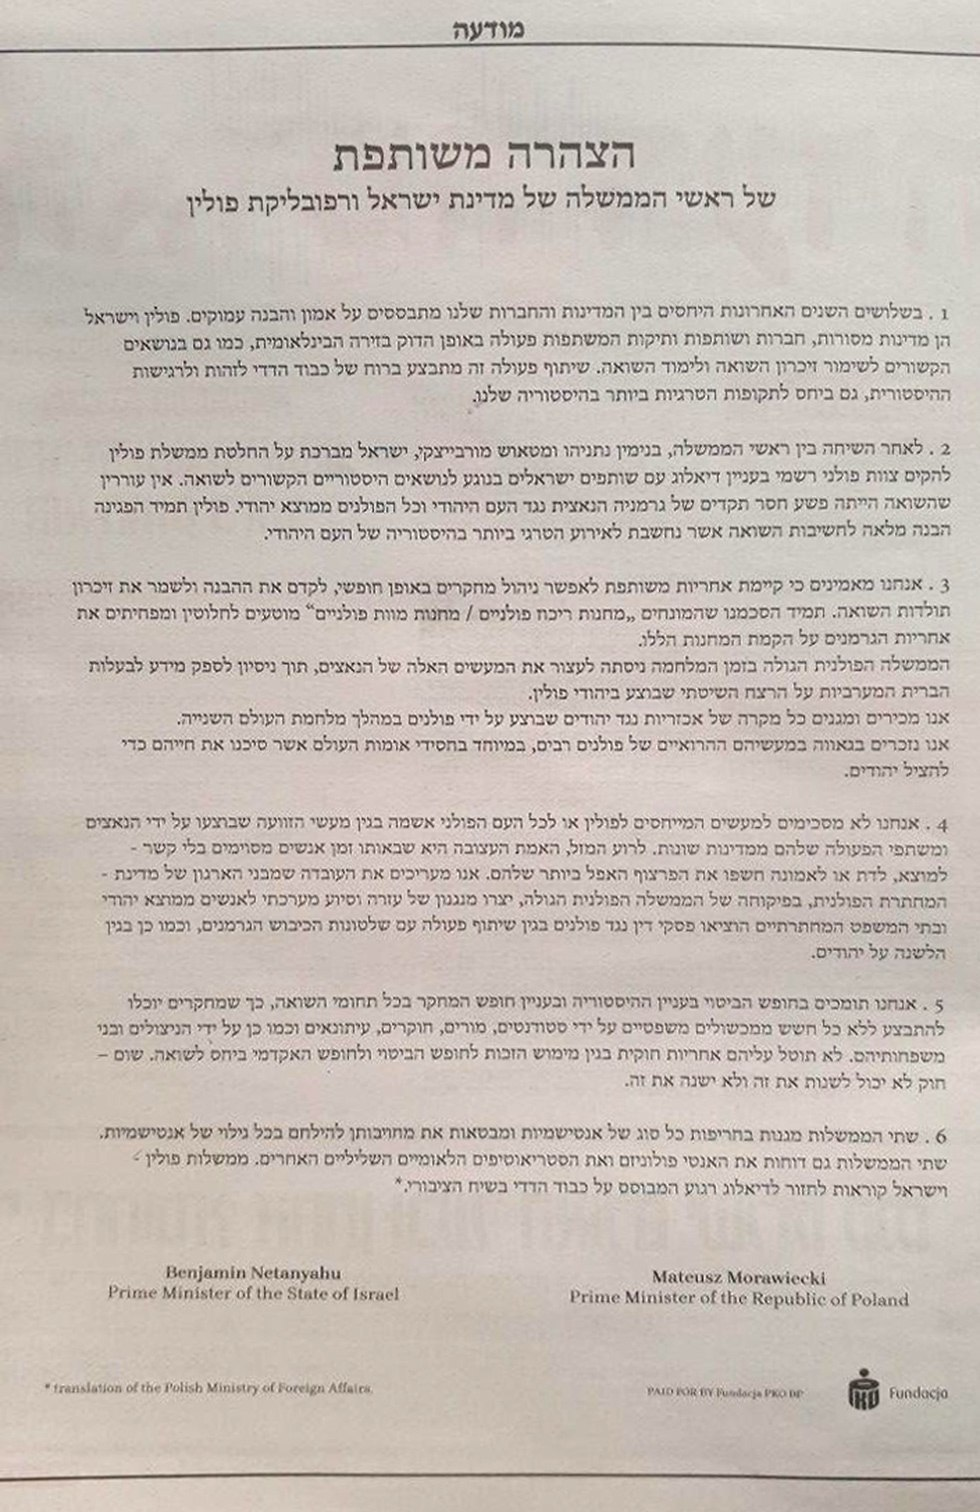 The joint statement published in Hebrew as a full-page ad in Israeli newspapers